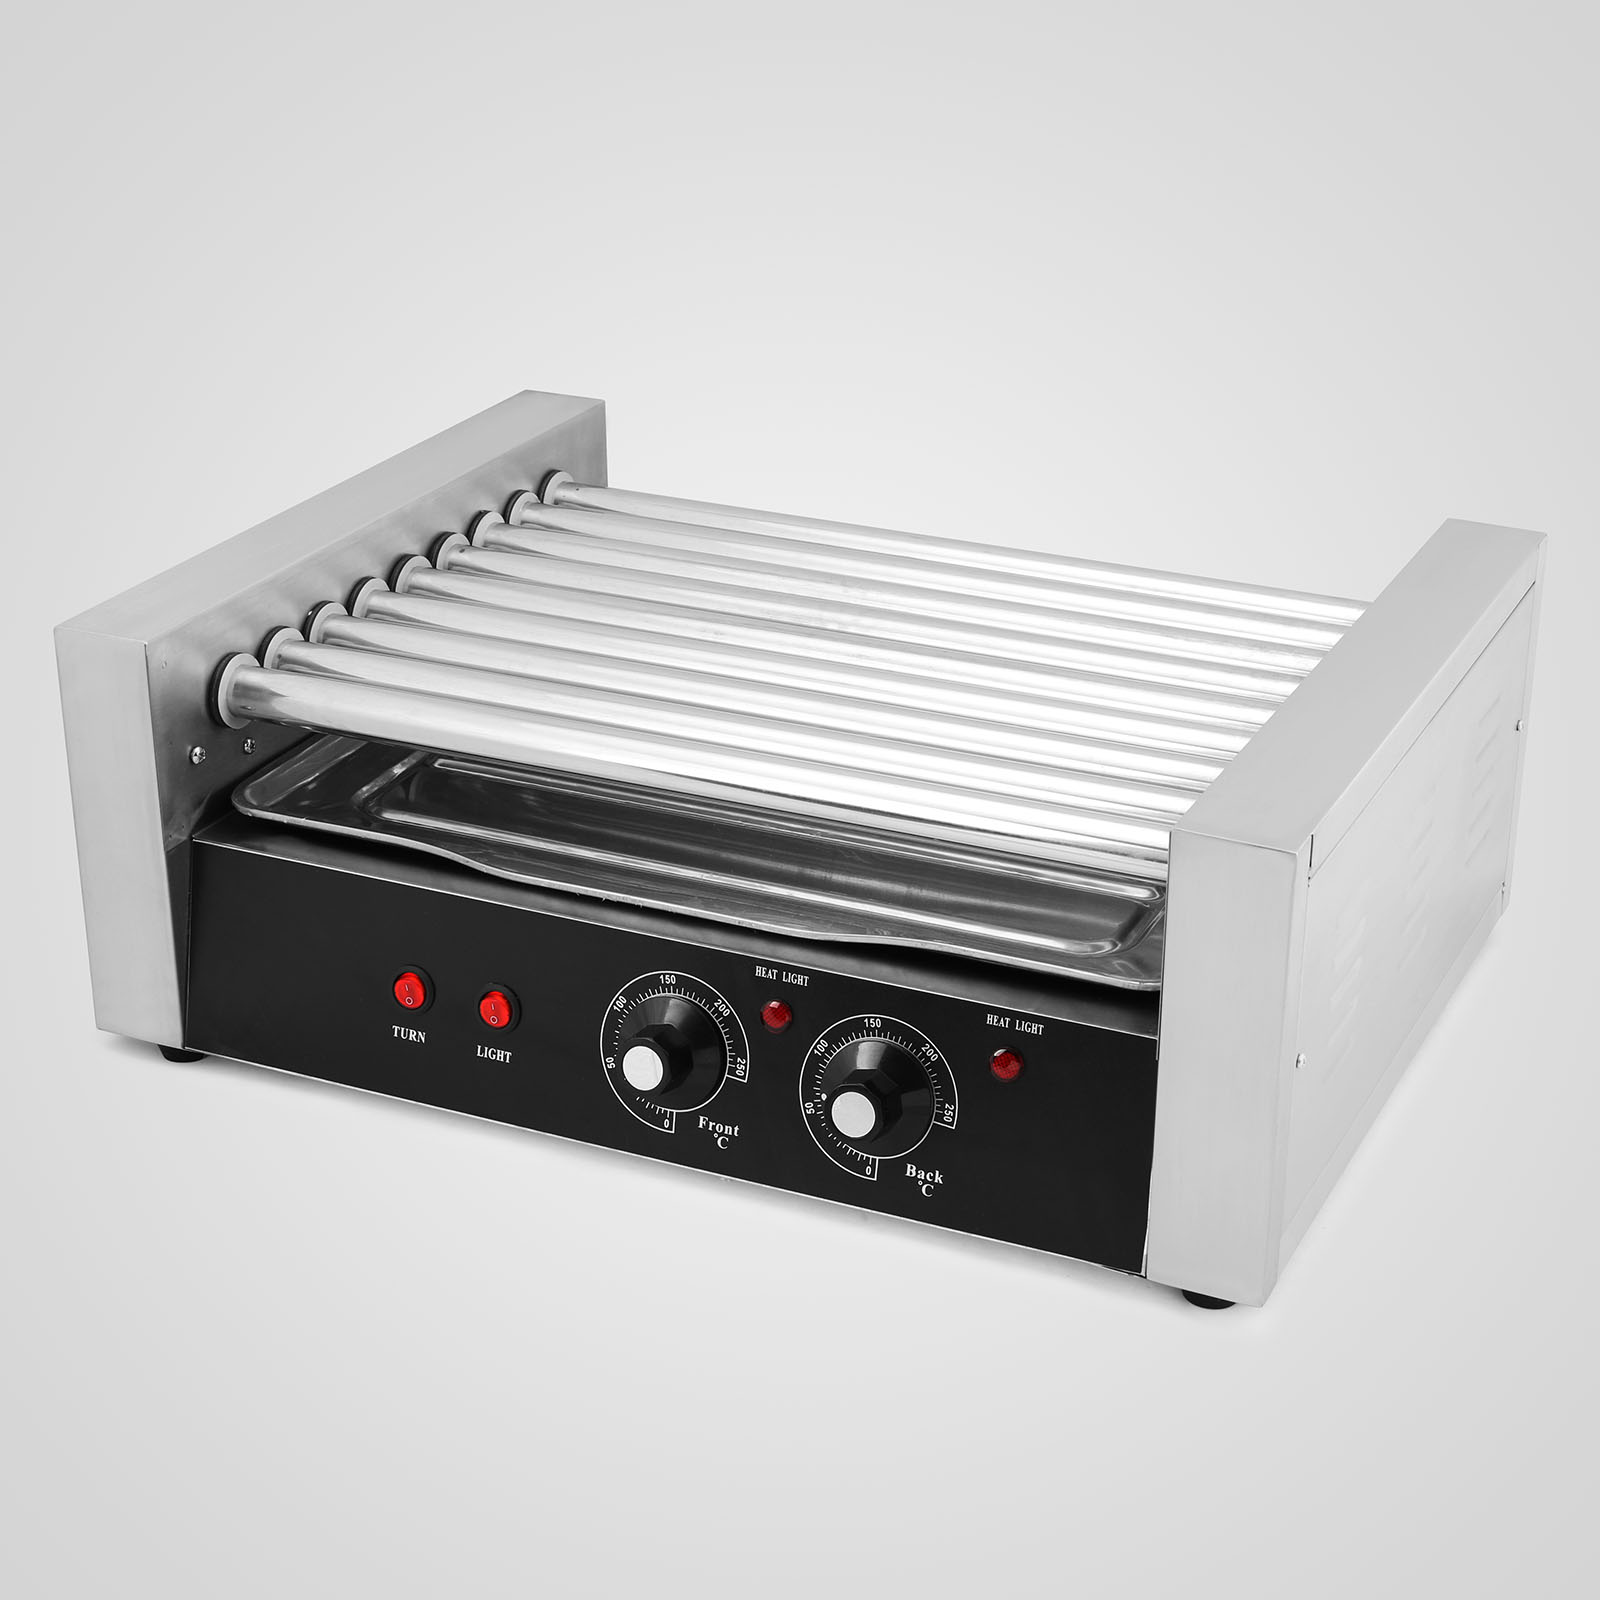 commercial sausage hotdog 9 roller grill hot dog cooker machine warmer ebay. Black Bedroom Furniture Sets. Home Design Ideas